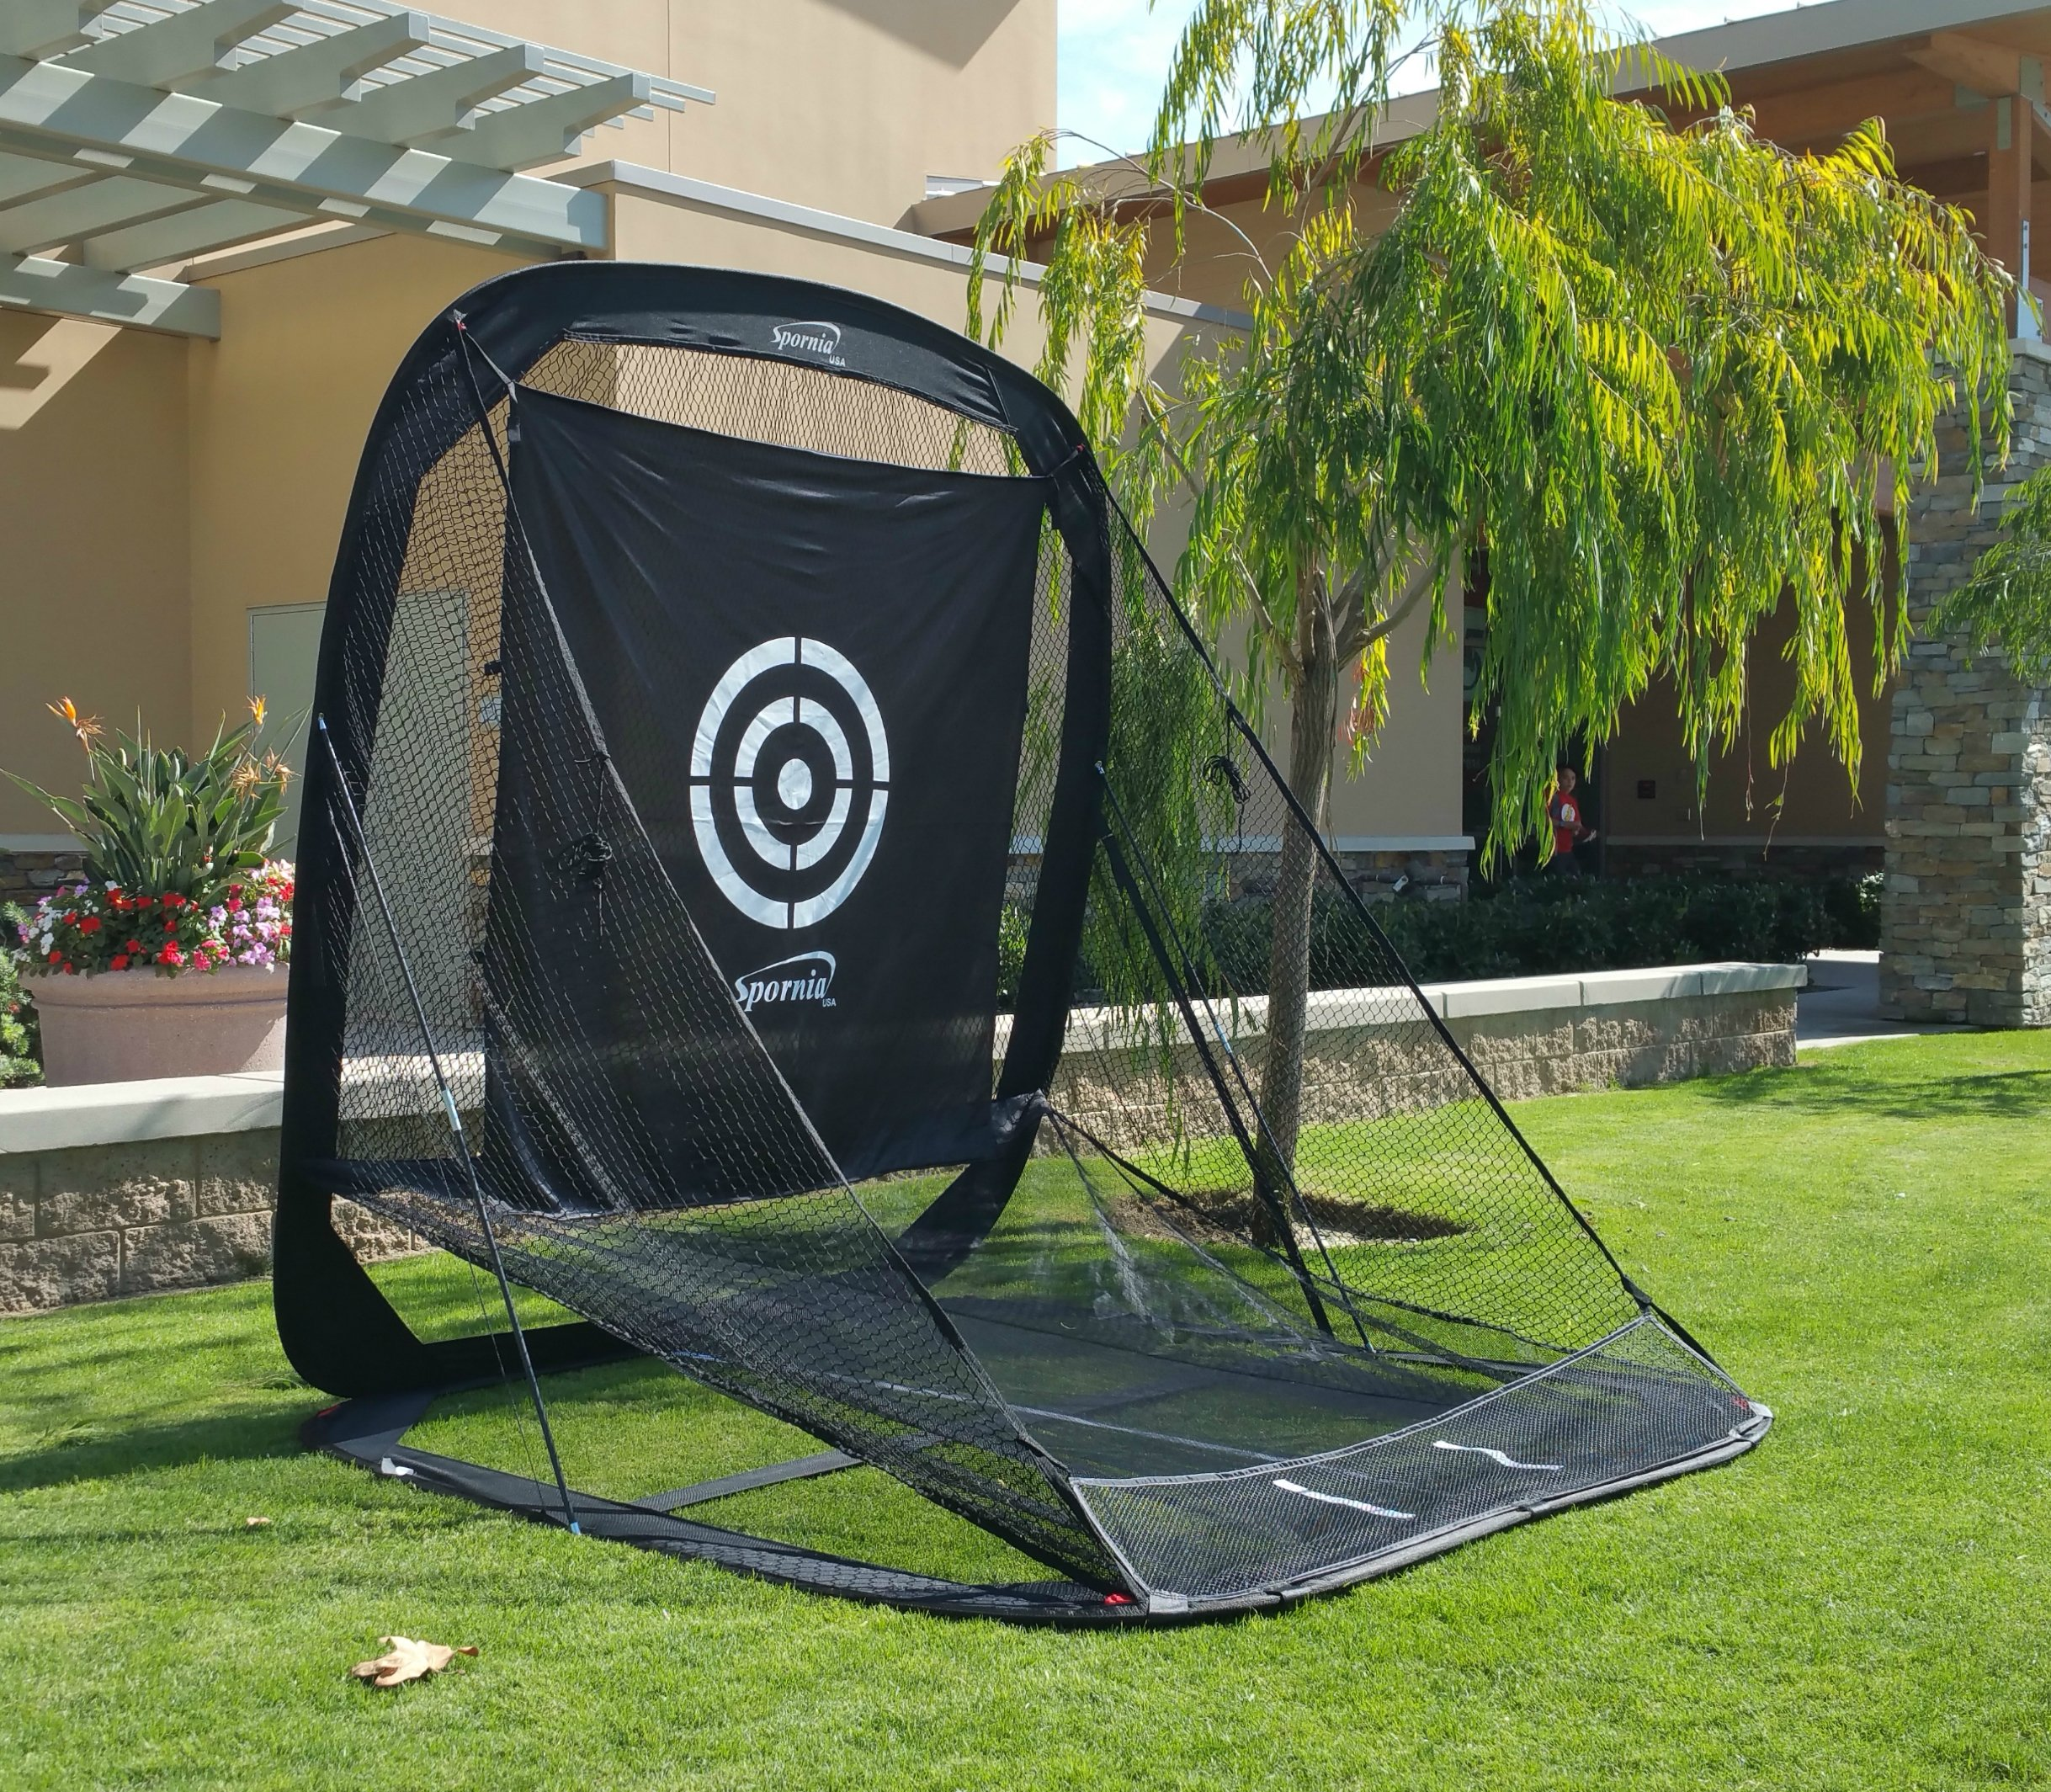 Spornia SPG-5 Golf Practice Net (3 in 1 Bundle) - Automatic Ball Return System W/ Target sheet,Two Side Barrier w/ Heavy Hitting Turf Mat w/ Chip Net Basket